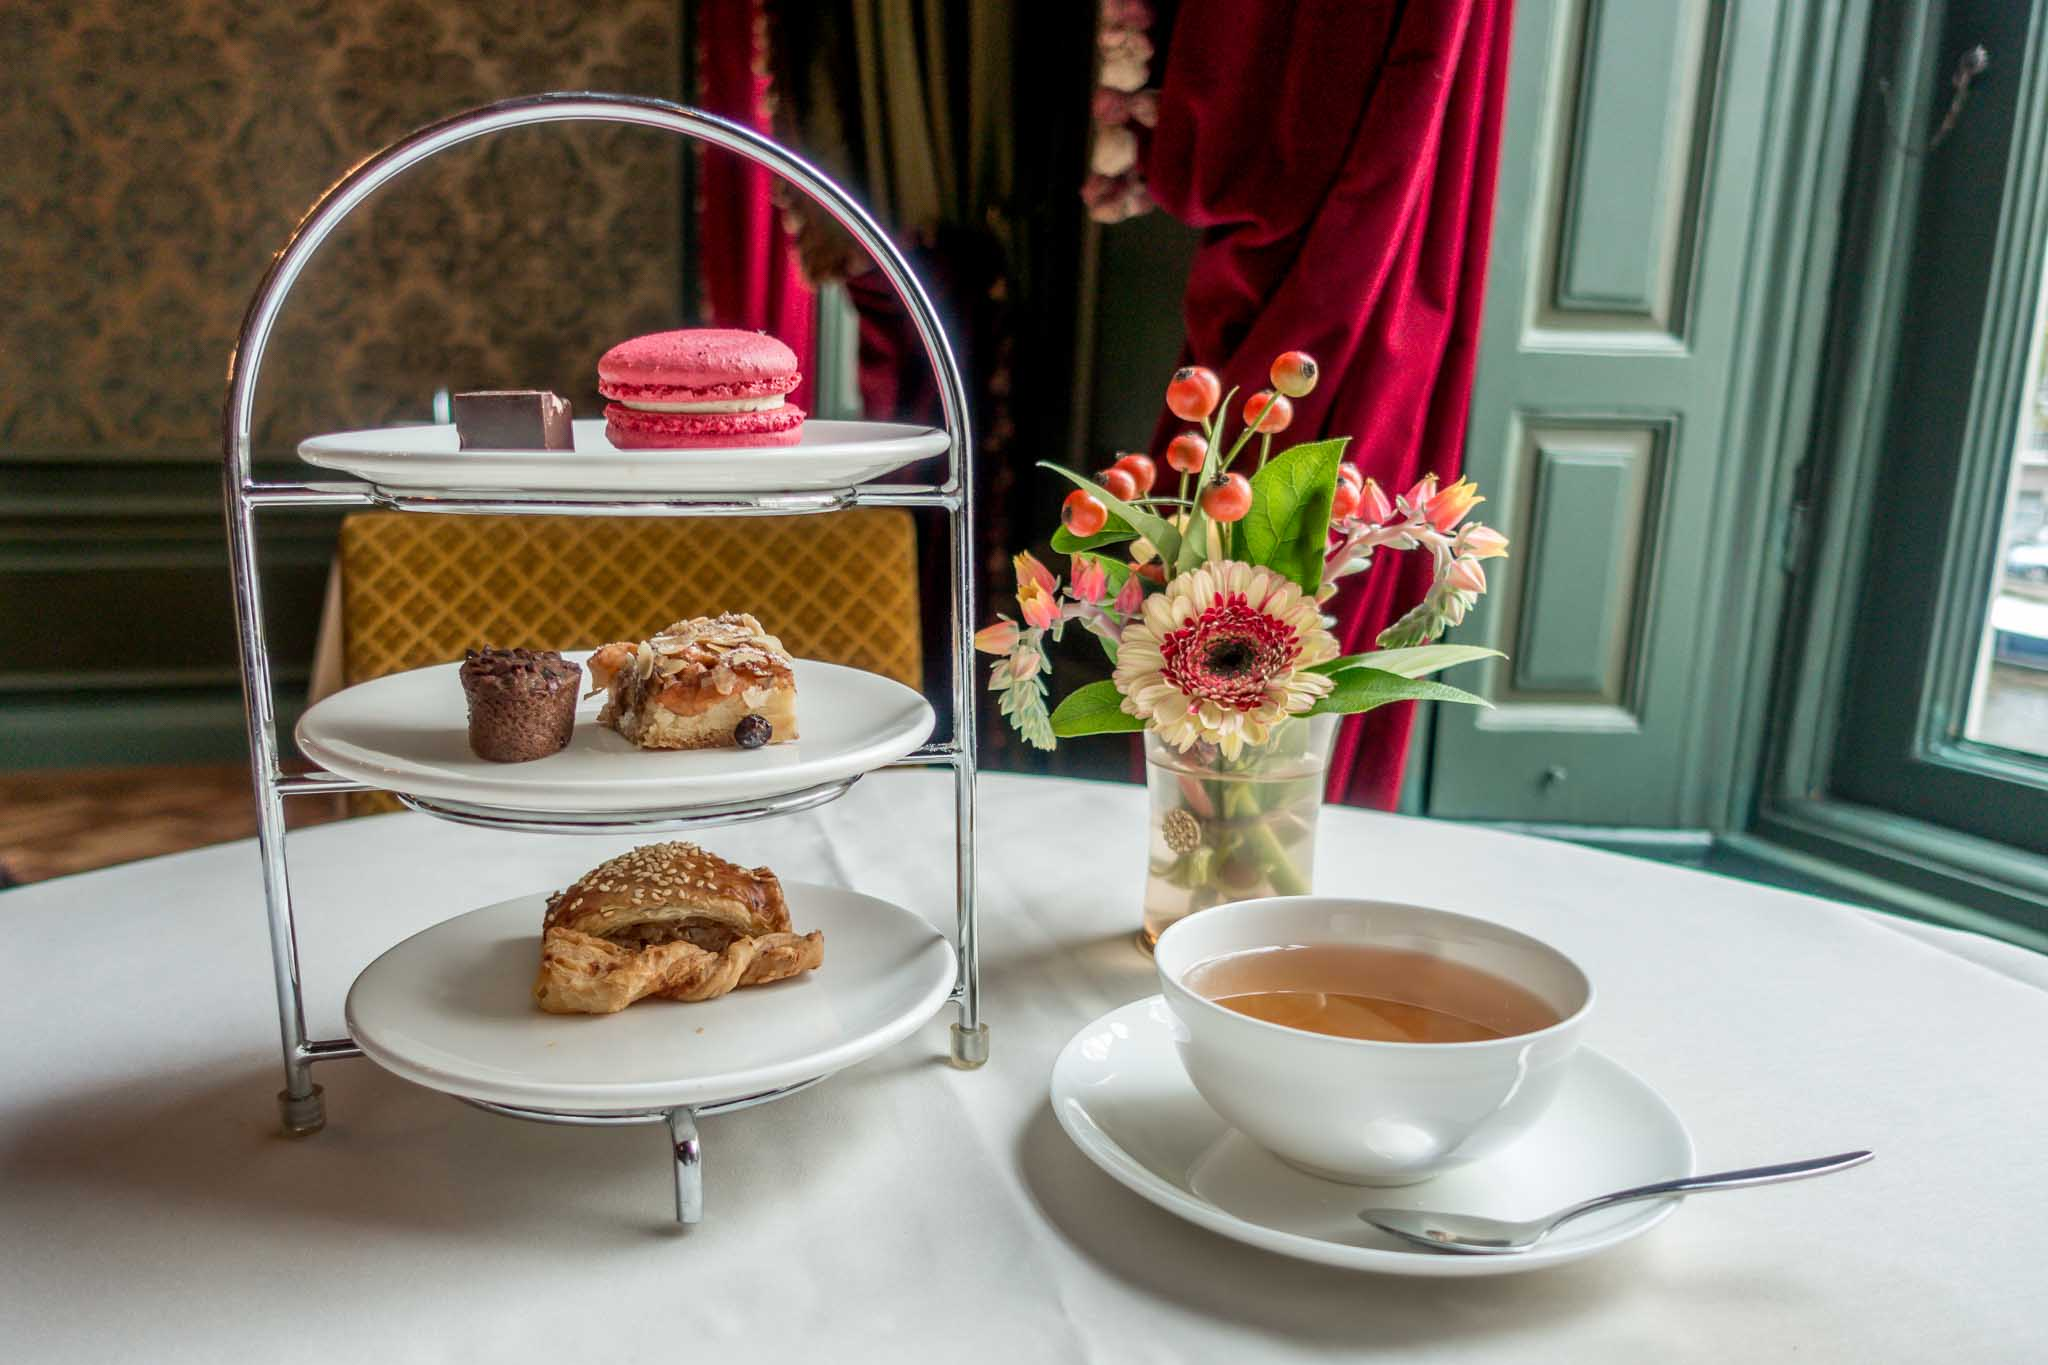 Pastries and tea for High Tea at the purse museum